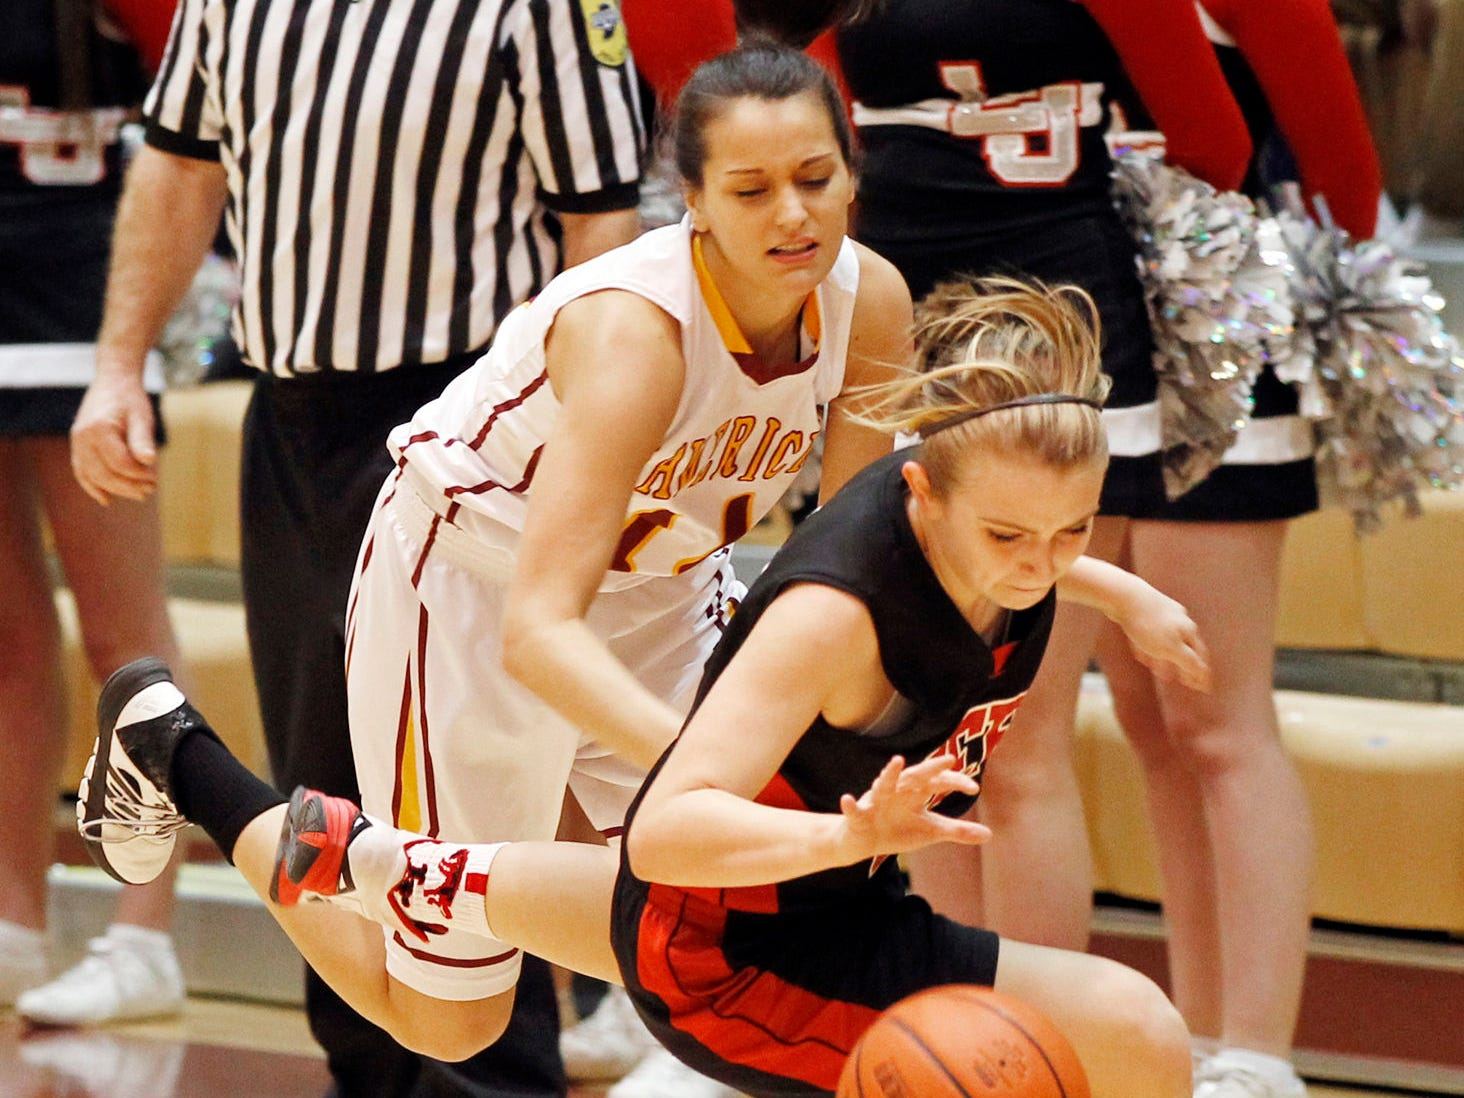 Rileigh McTagertt of Lafayette Jeff is fouled by Katee Kurtz of McCutcheon in girls sectional basketball action Friday, February 13, 2015, at McCutcheon High School. McCutcheon defeated Lafayette Jeff 43-33.